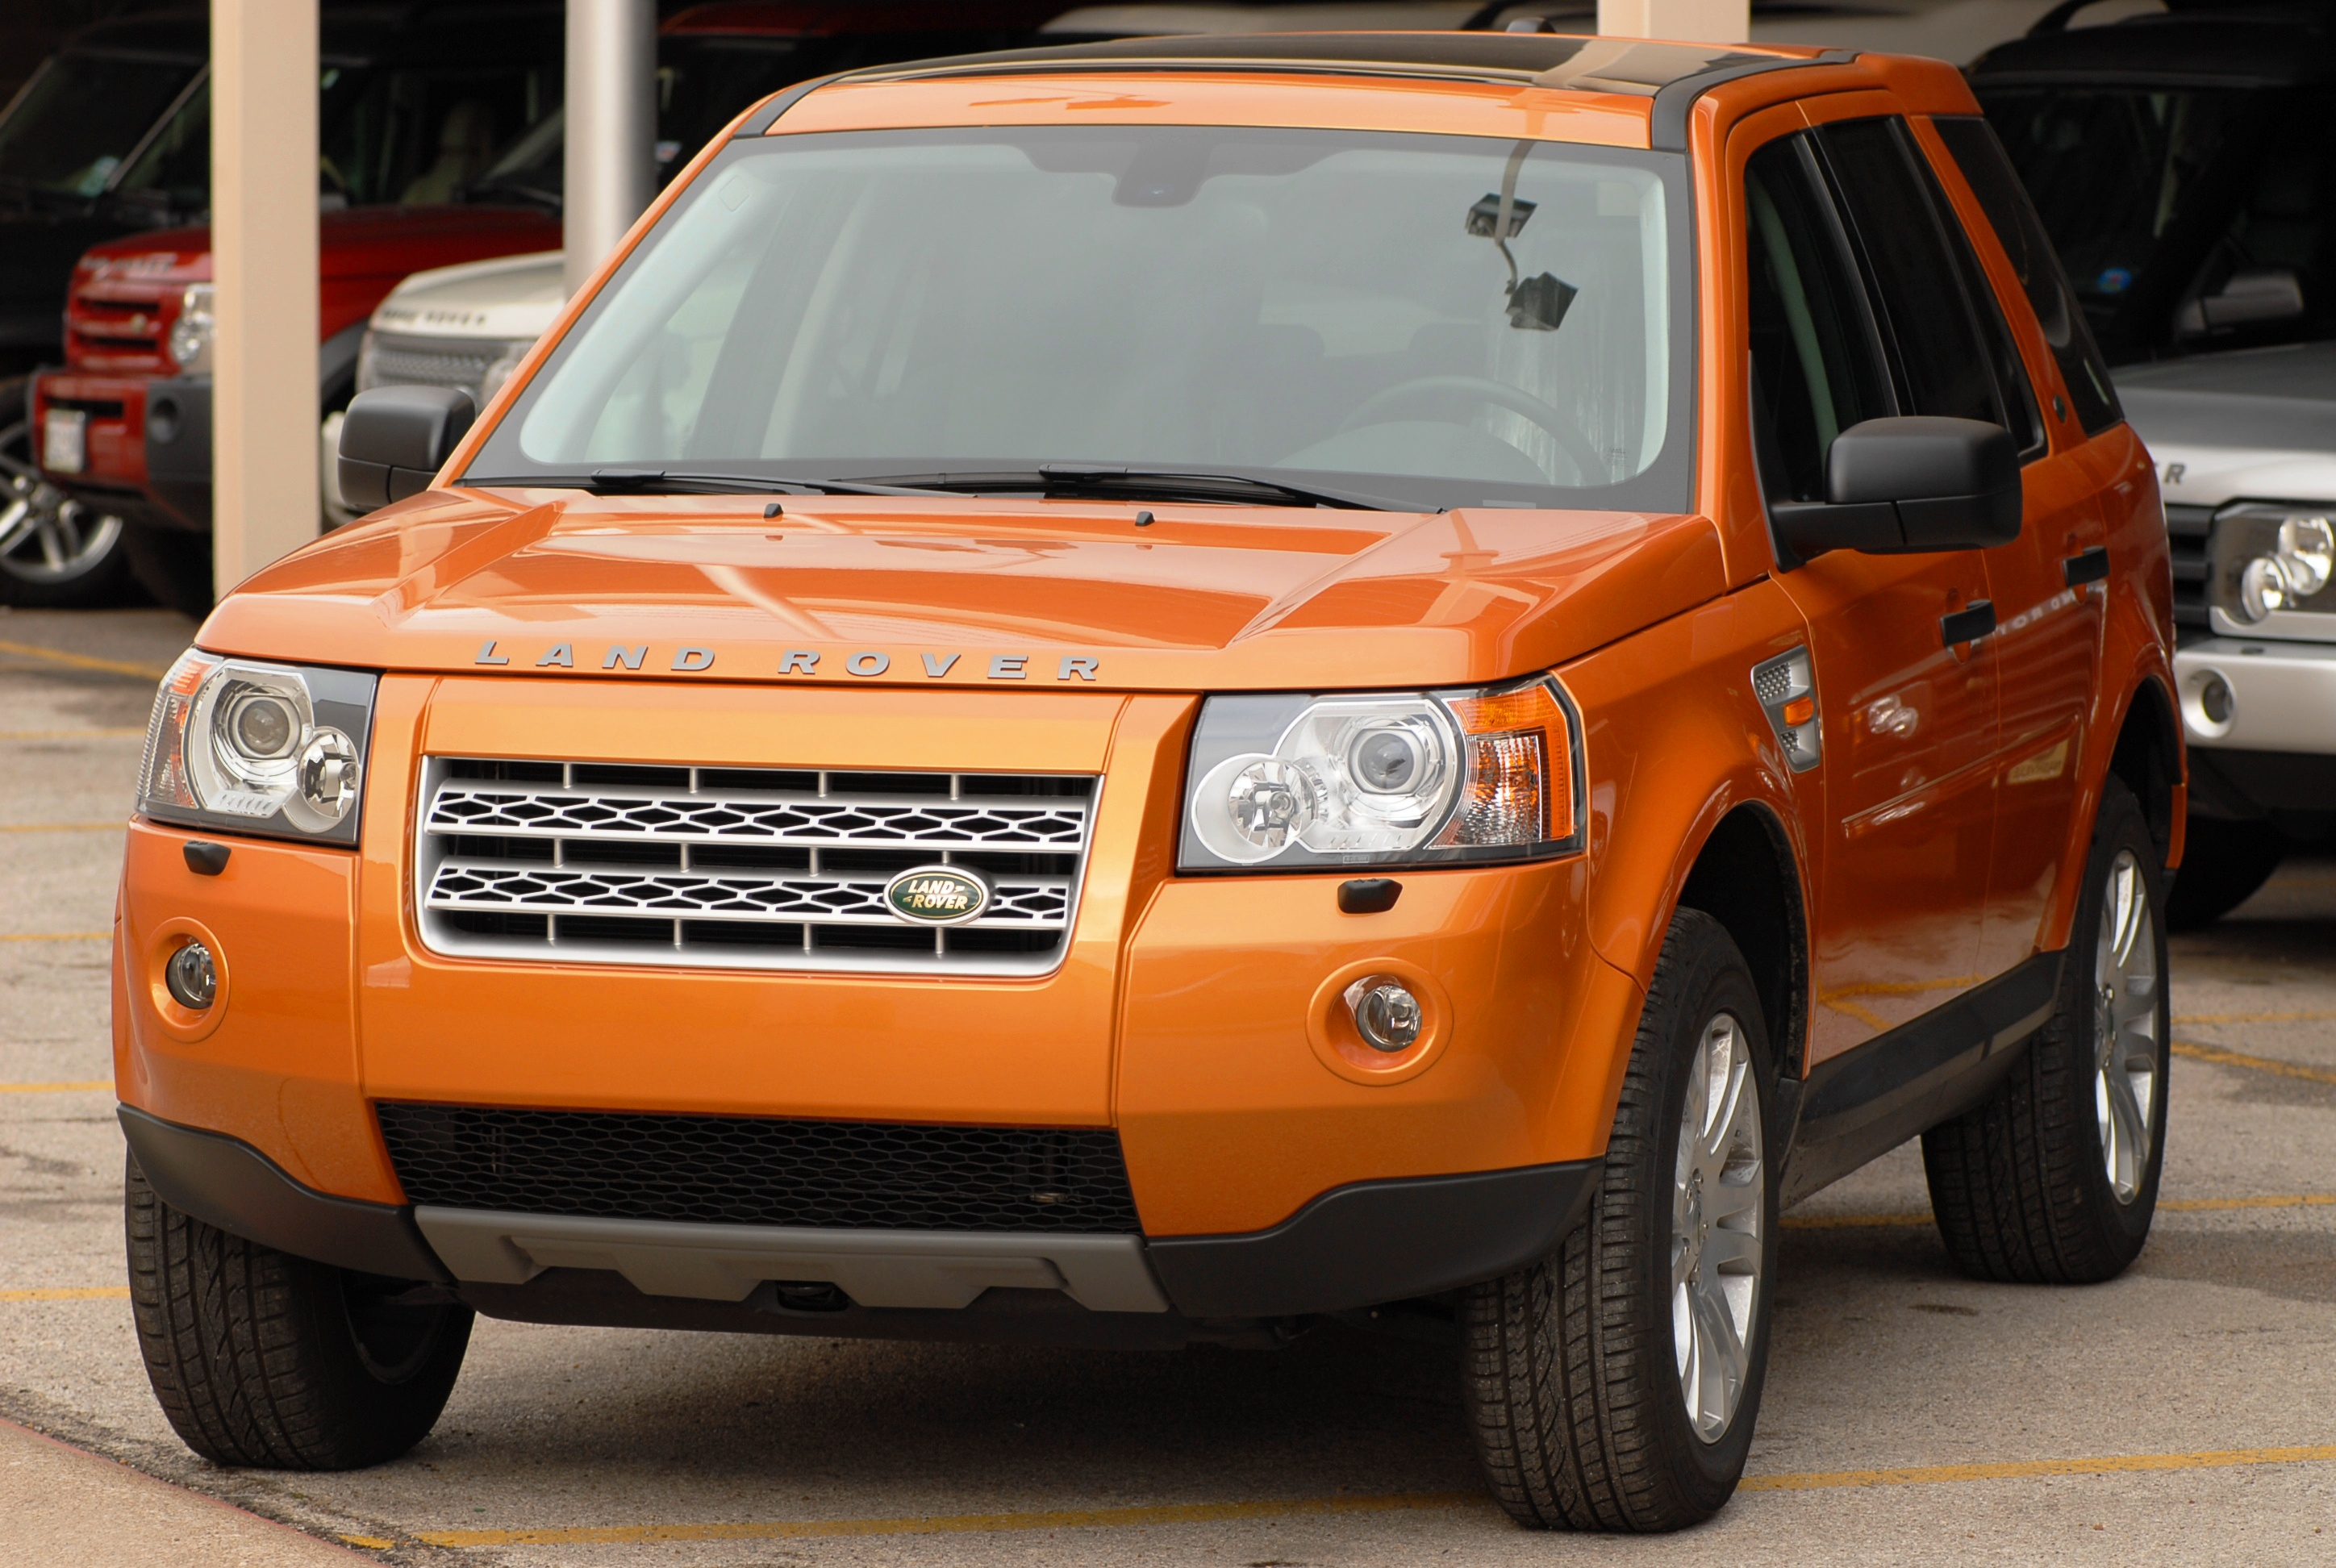 https://upload.wikimedia.org/wikipedia/commons/c/cc/Land_Rover_Freelander_%28LR2%29.jpg